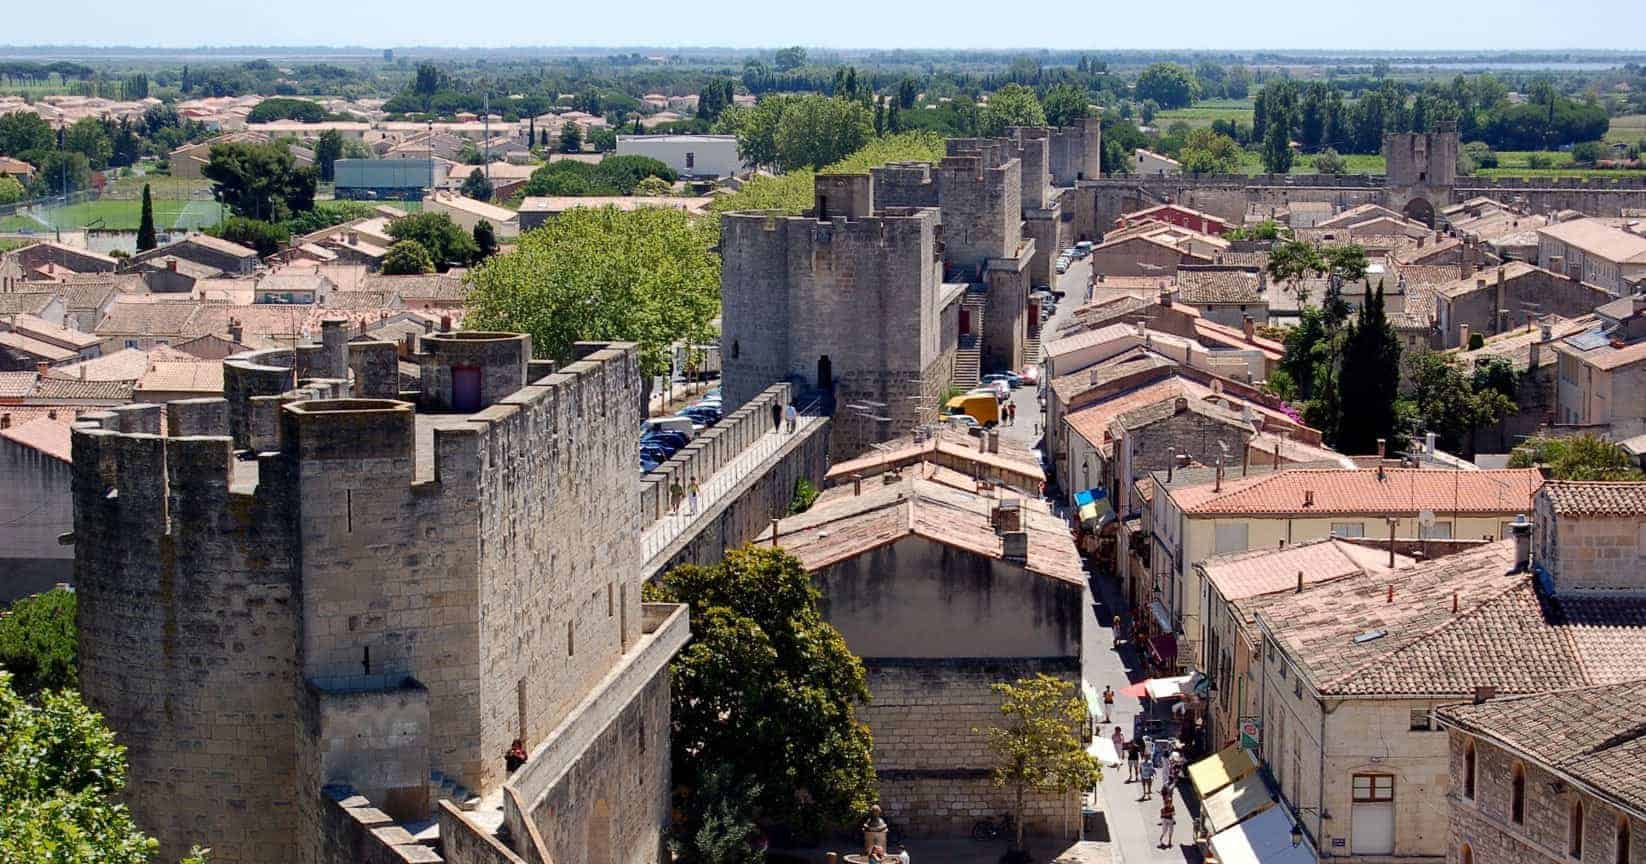 Aigues Mortes ReisDit.no